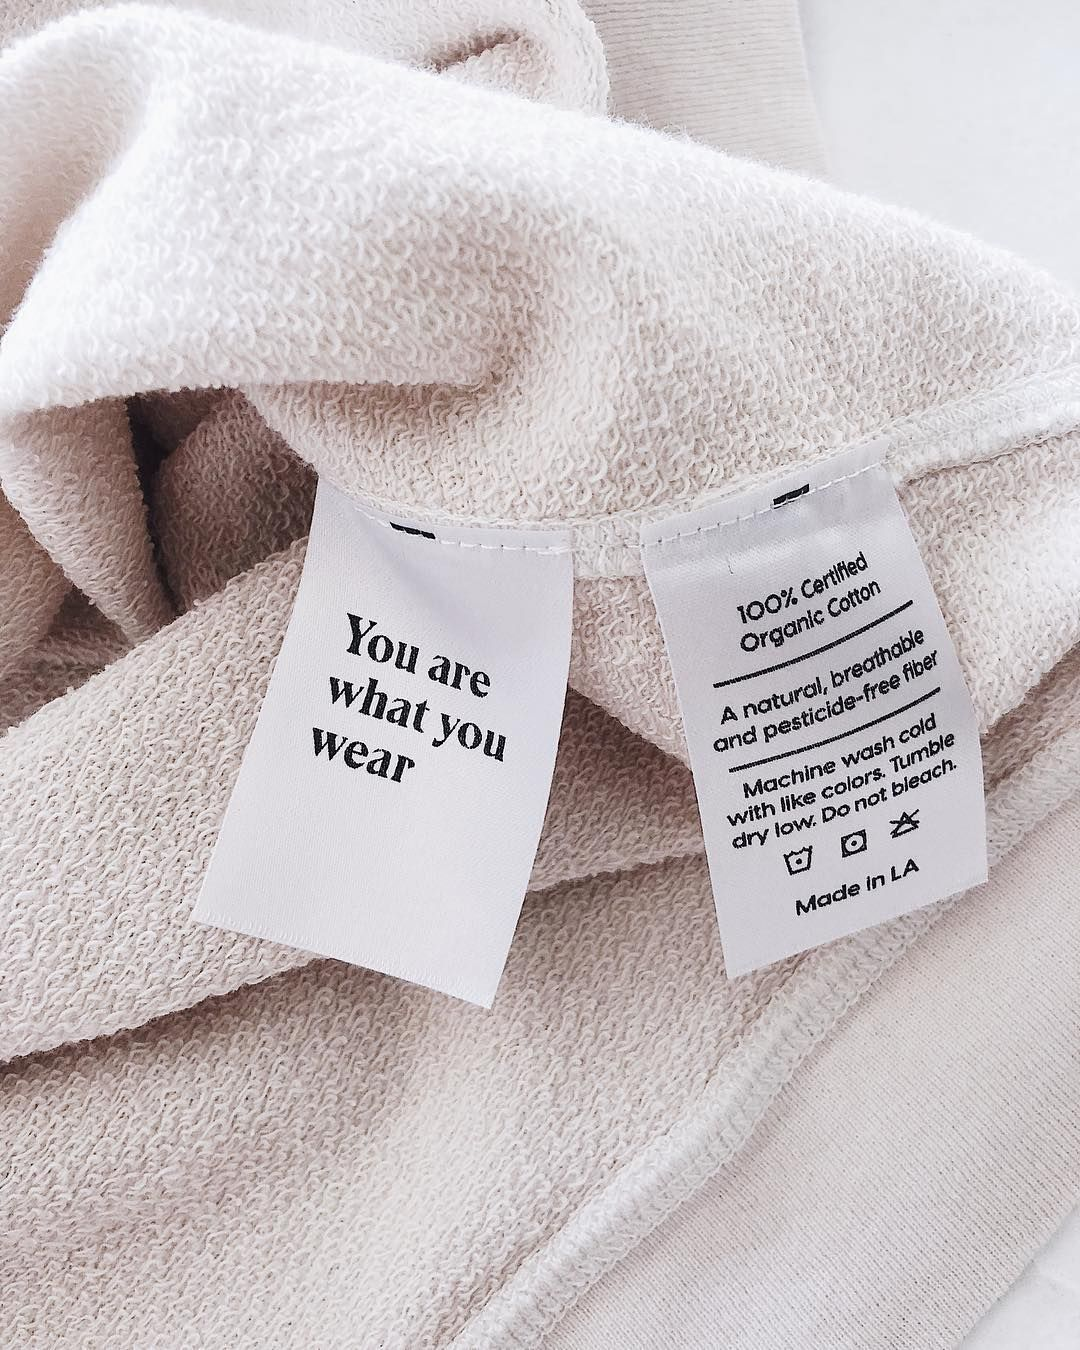 It S Recommended To Wash Your New Synthetic Polyester Clothes Up To Three Times Before Yo Clothing Packaging Clothing Labels Design Branding Design Packaging